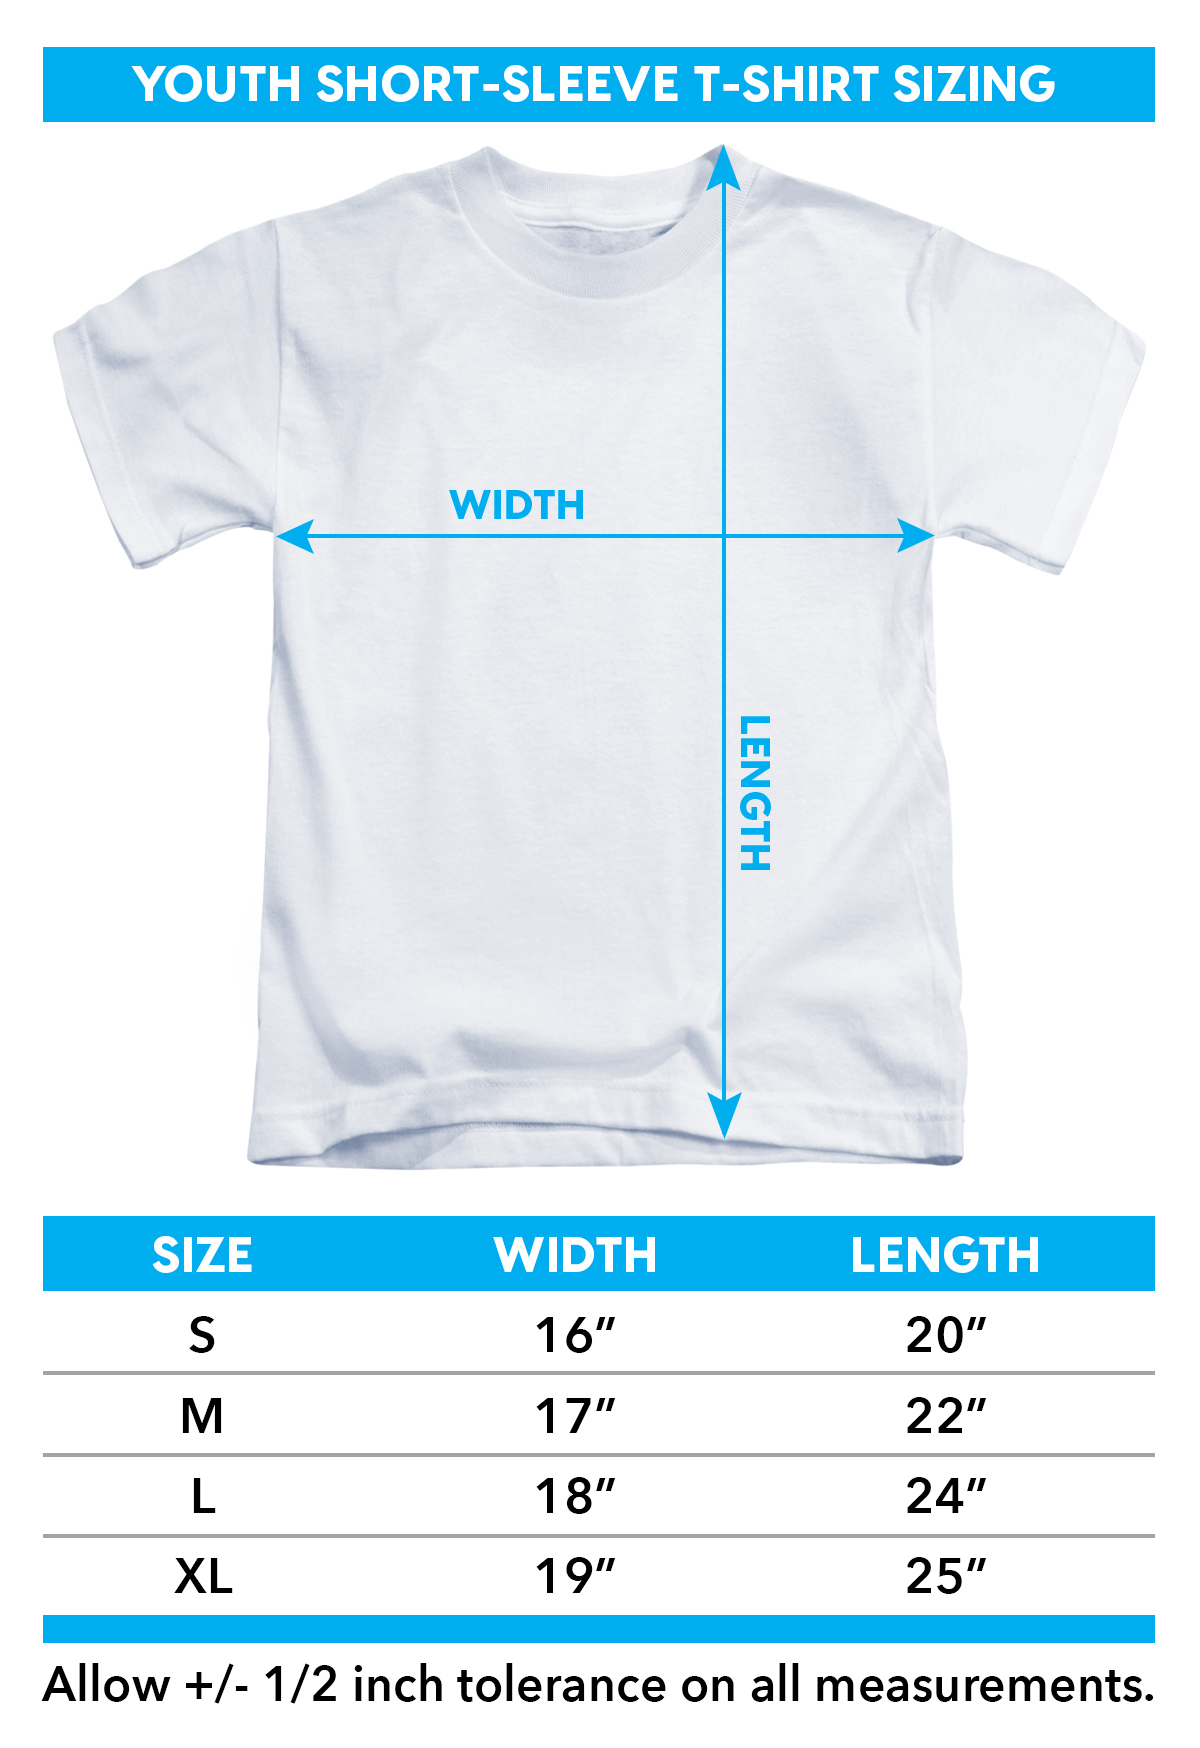 Sizing chart for Mighty Morphin Power Rangers Youth T-Shirt - Villains TRV-PWR4001-YT